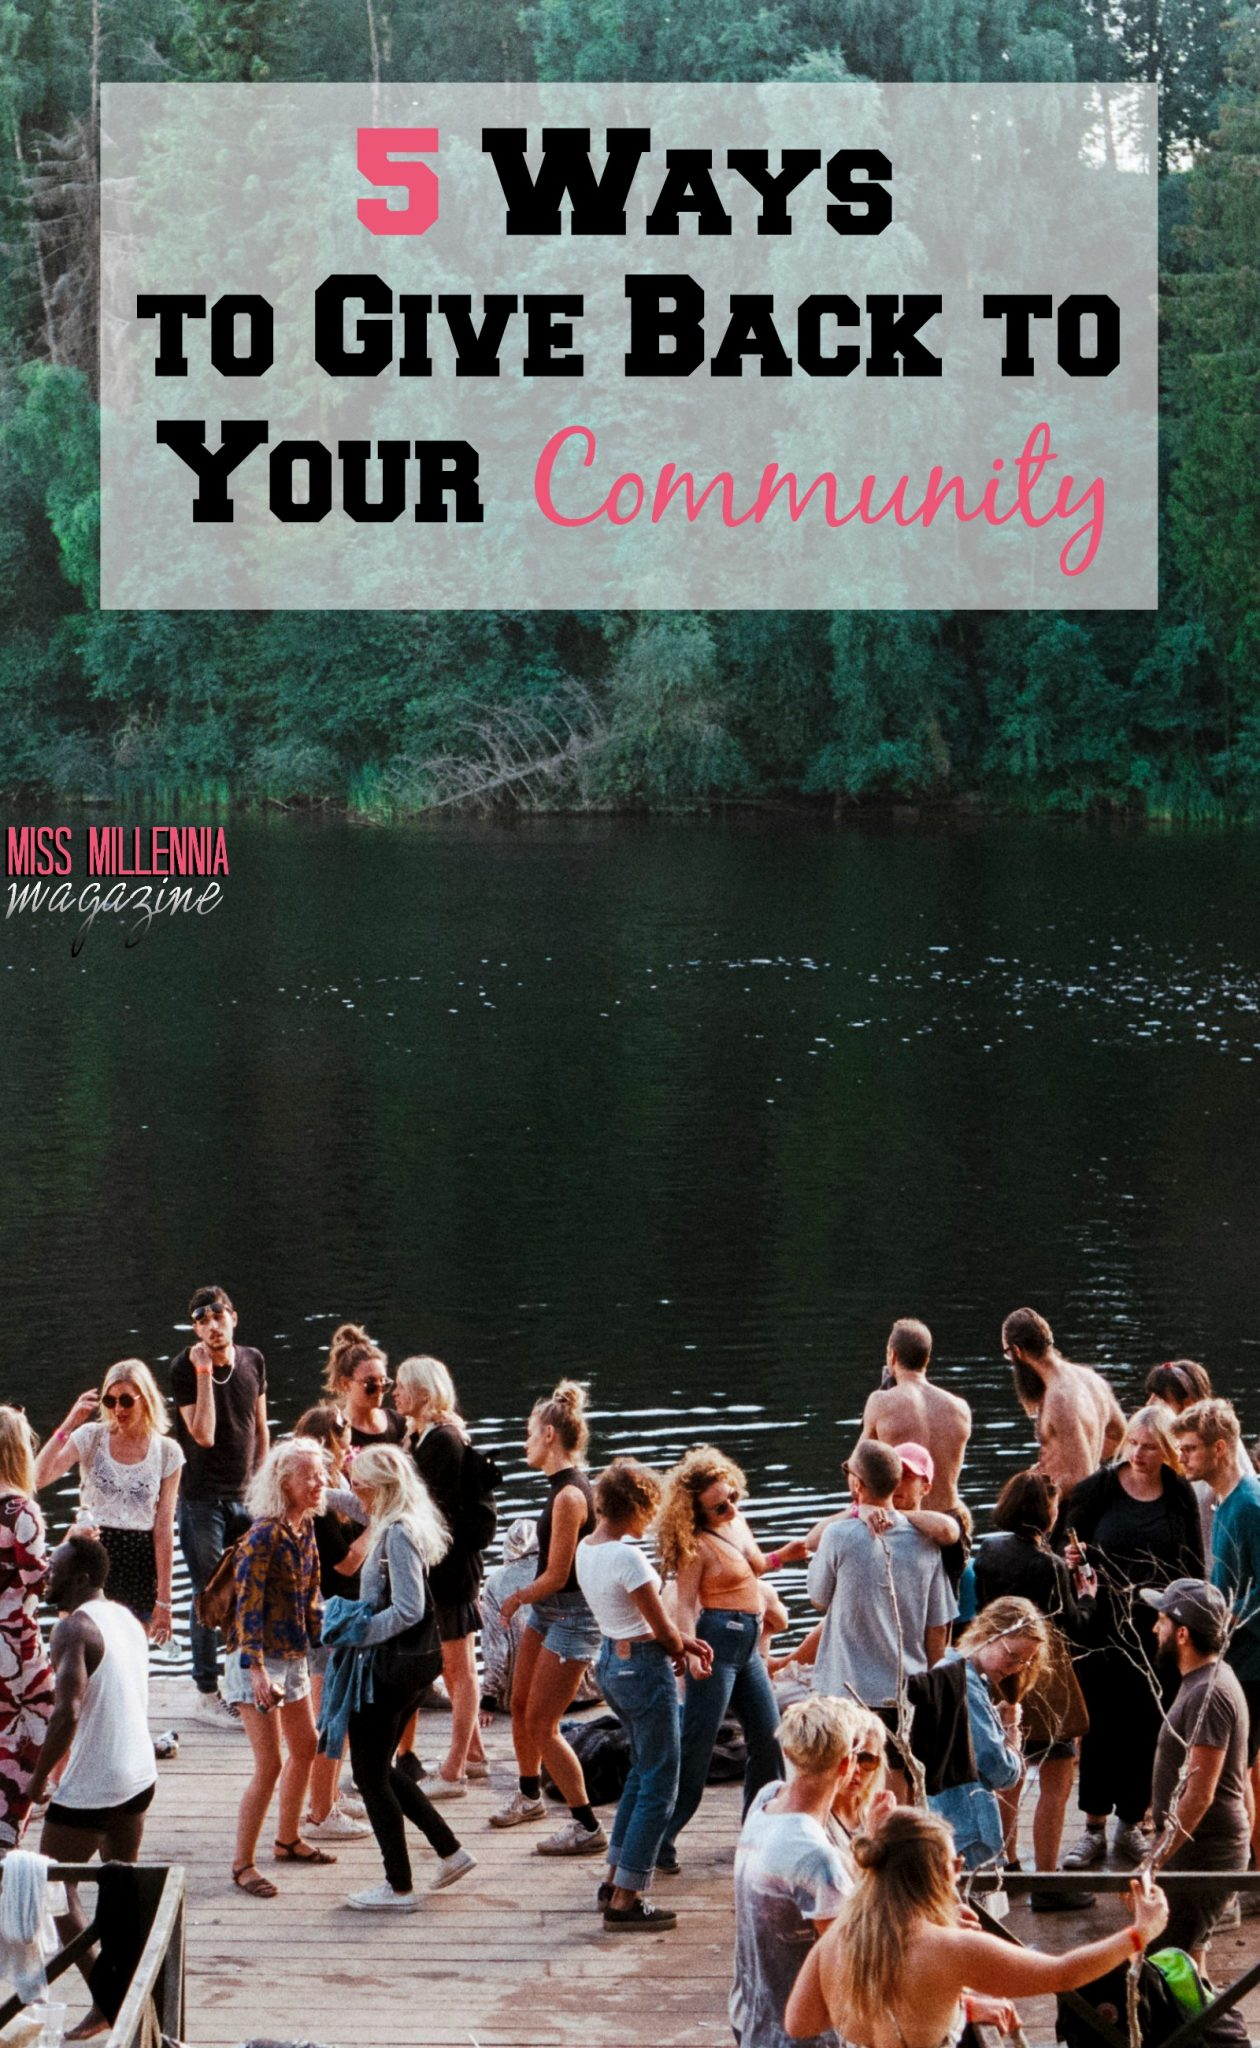 5 Ways to Give Back to Your Community